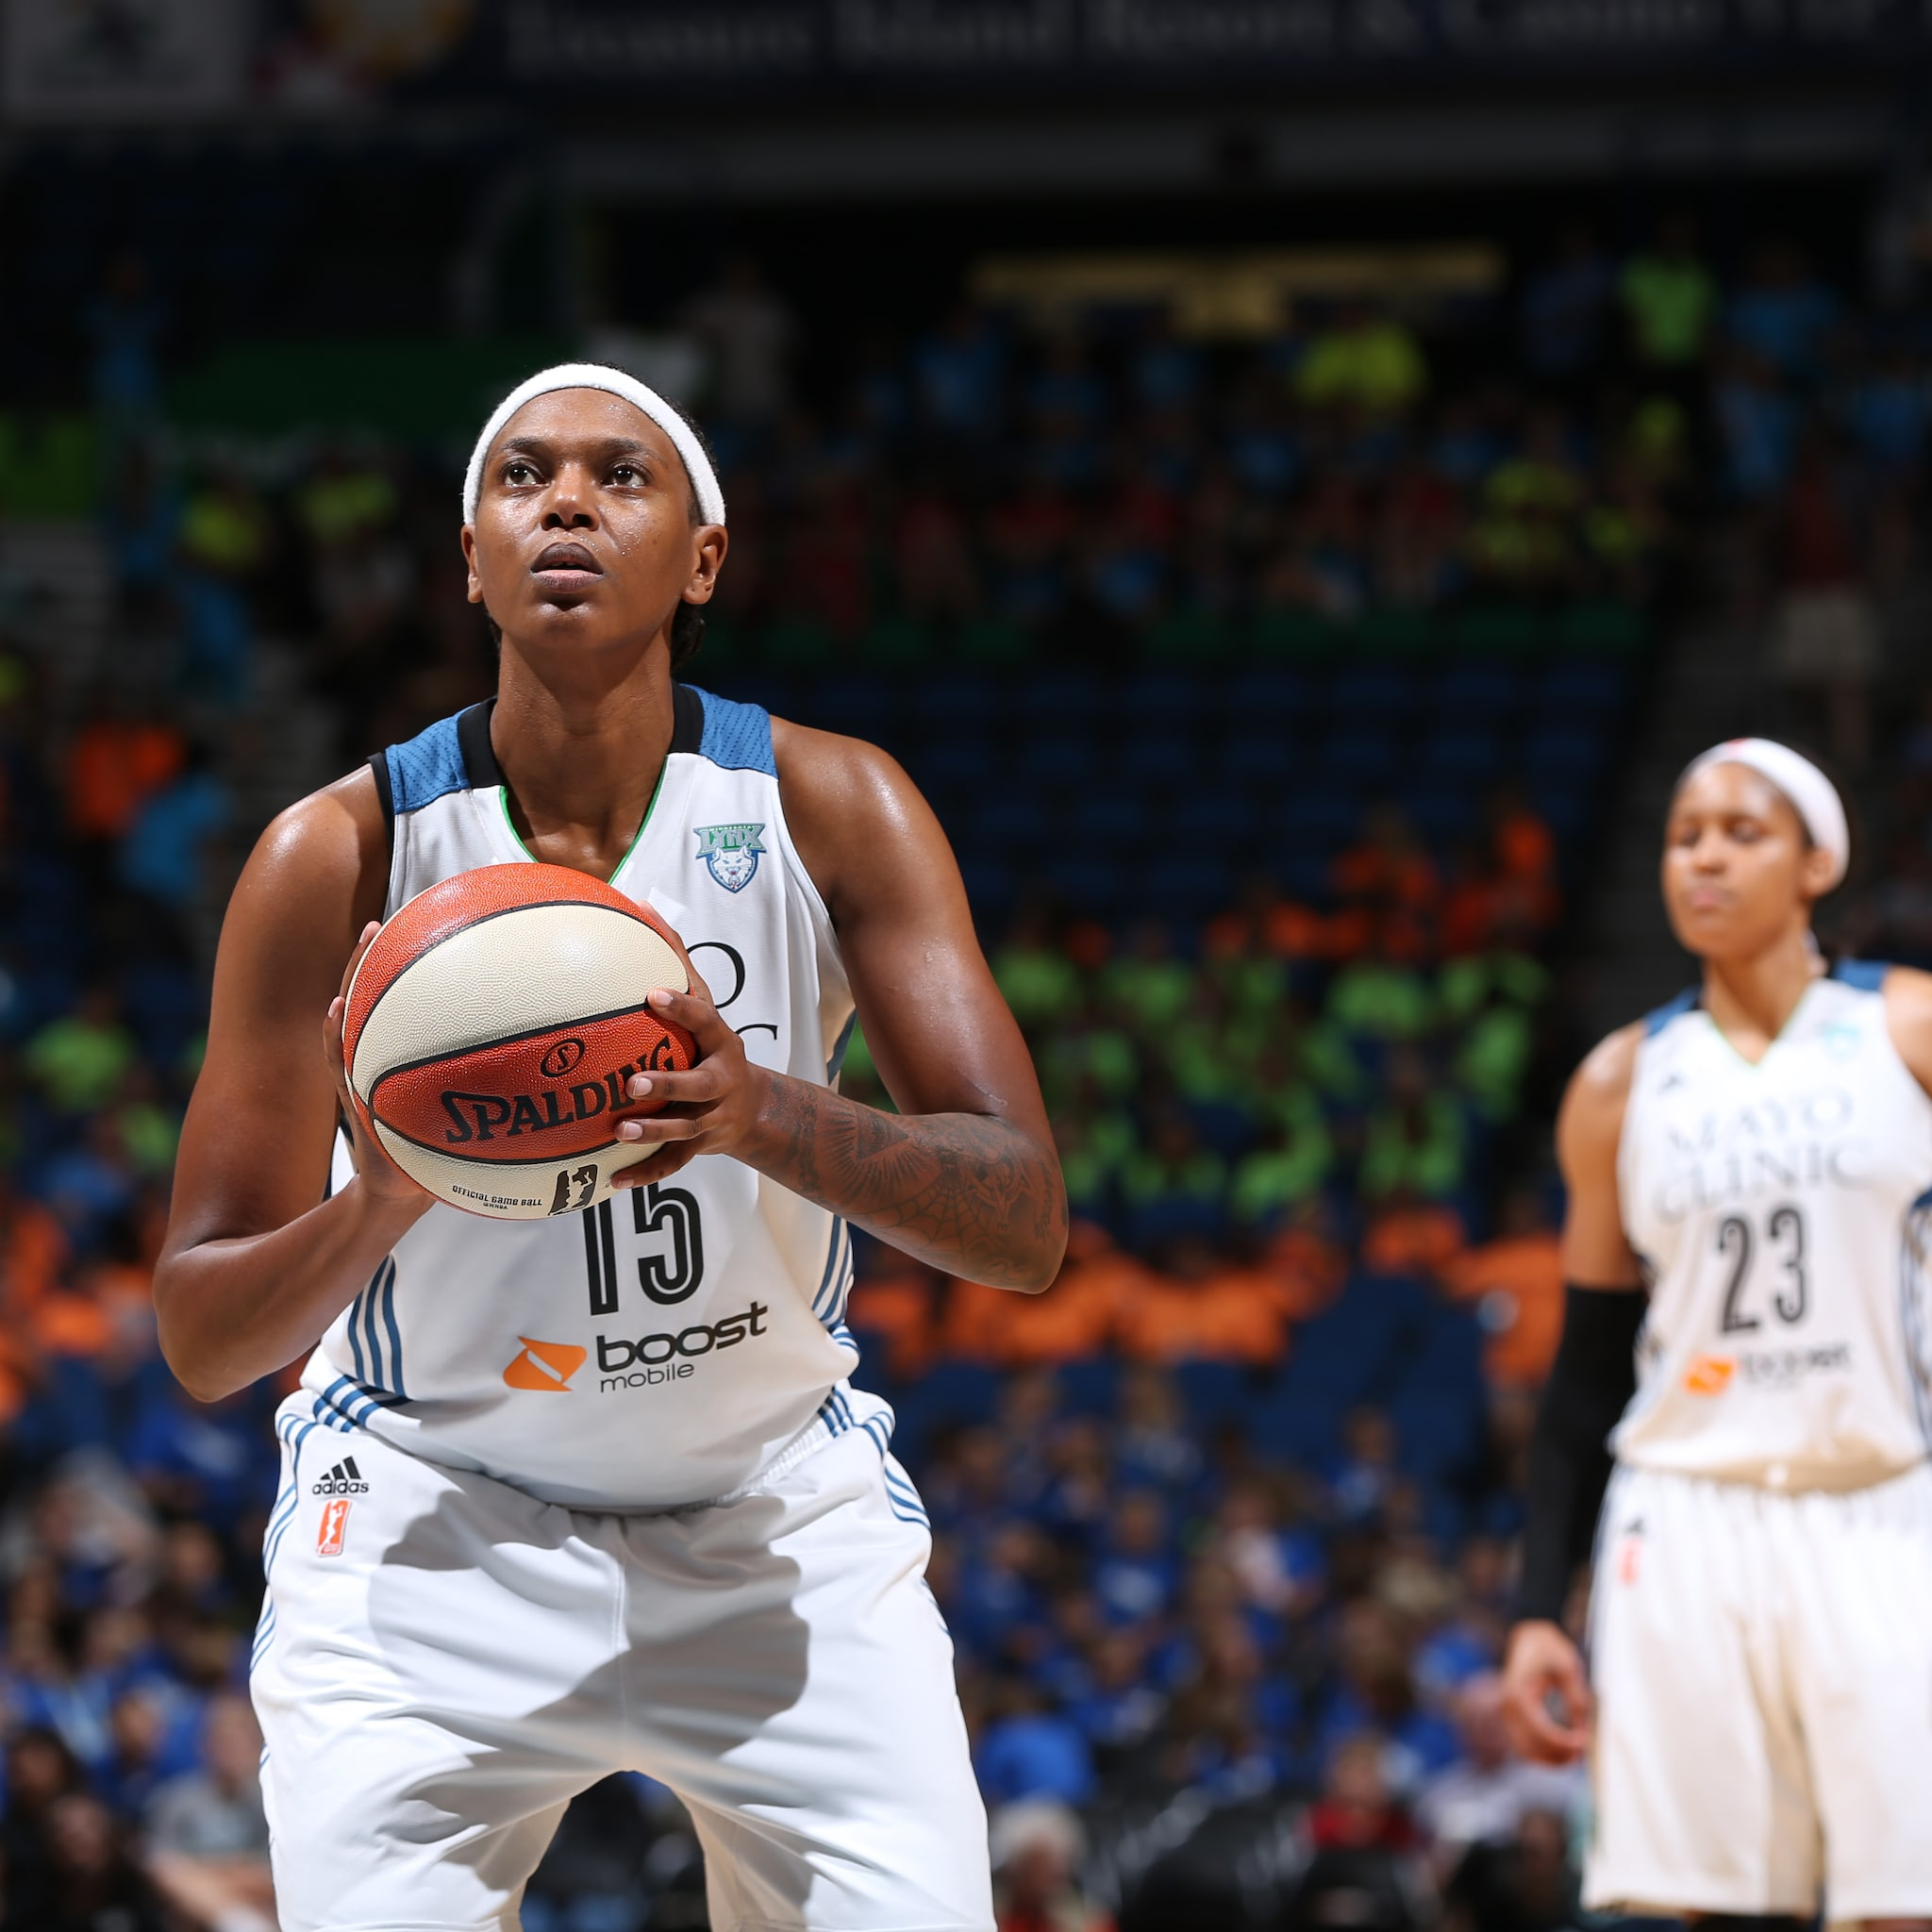 MINNEAPOLIS, MN - JULY 22: Asjha Jones #15 of the Minnesota Lynx attempts a free throw against the Connecticut Sun on July 22, 2015 at Target Center in Minneapolis, Minnesota. NOTE TO USER: User expressly acknowledges and agrees that, by downloading and or using this Photograph, user is consenting to the terms and conditions of the Getty Images License Agreement. Mandatory Copyright Notice: Copyright 2015 NBAE (Photo by David Sherman/NBAE via Getty Images)